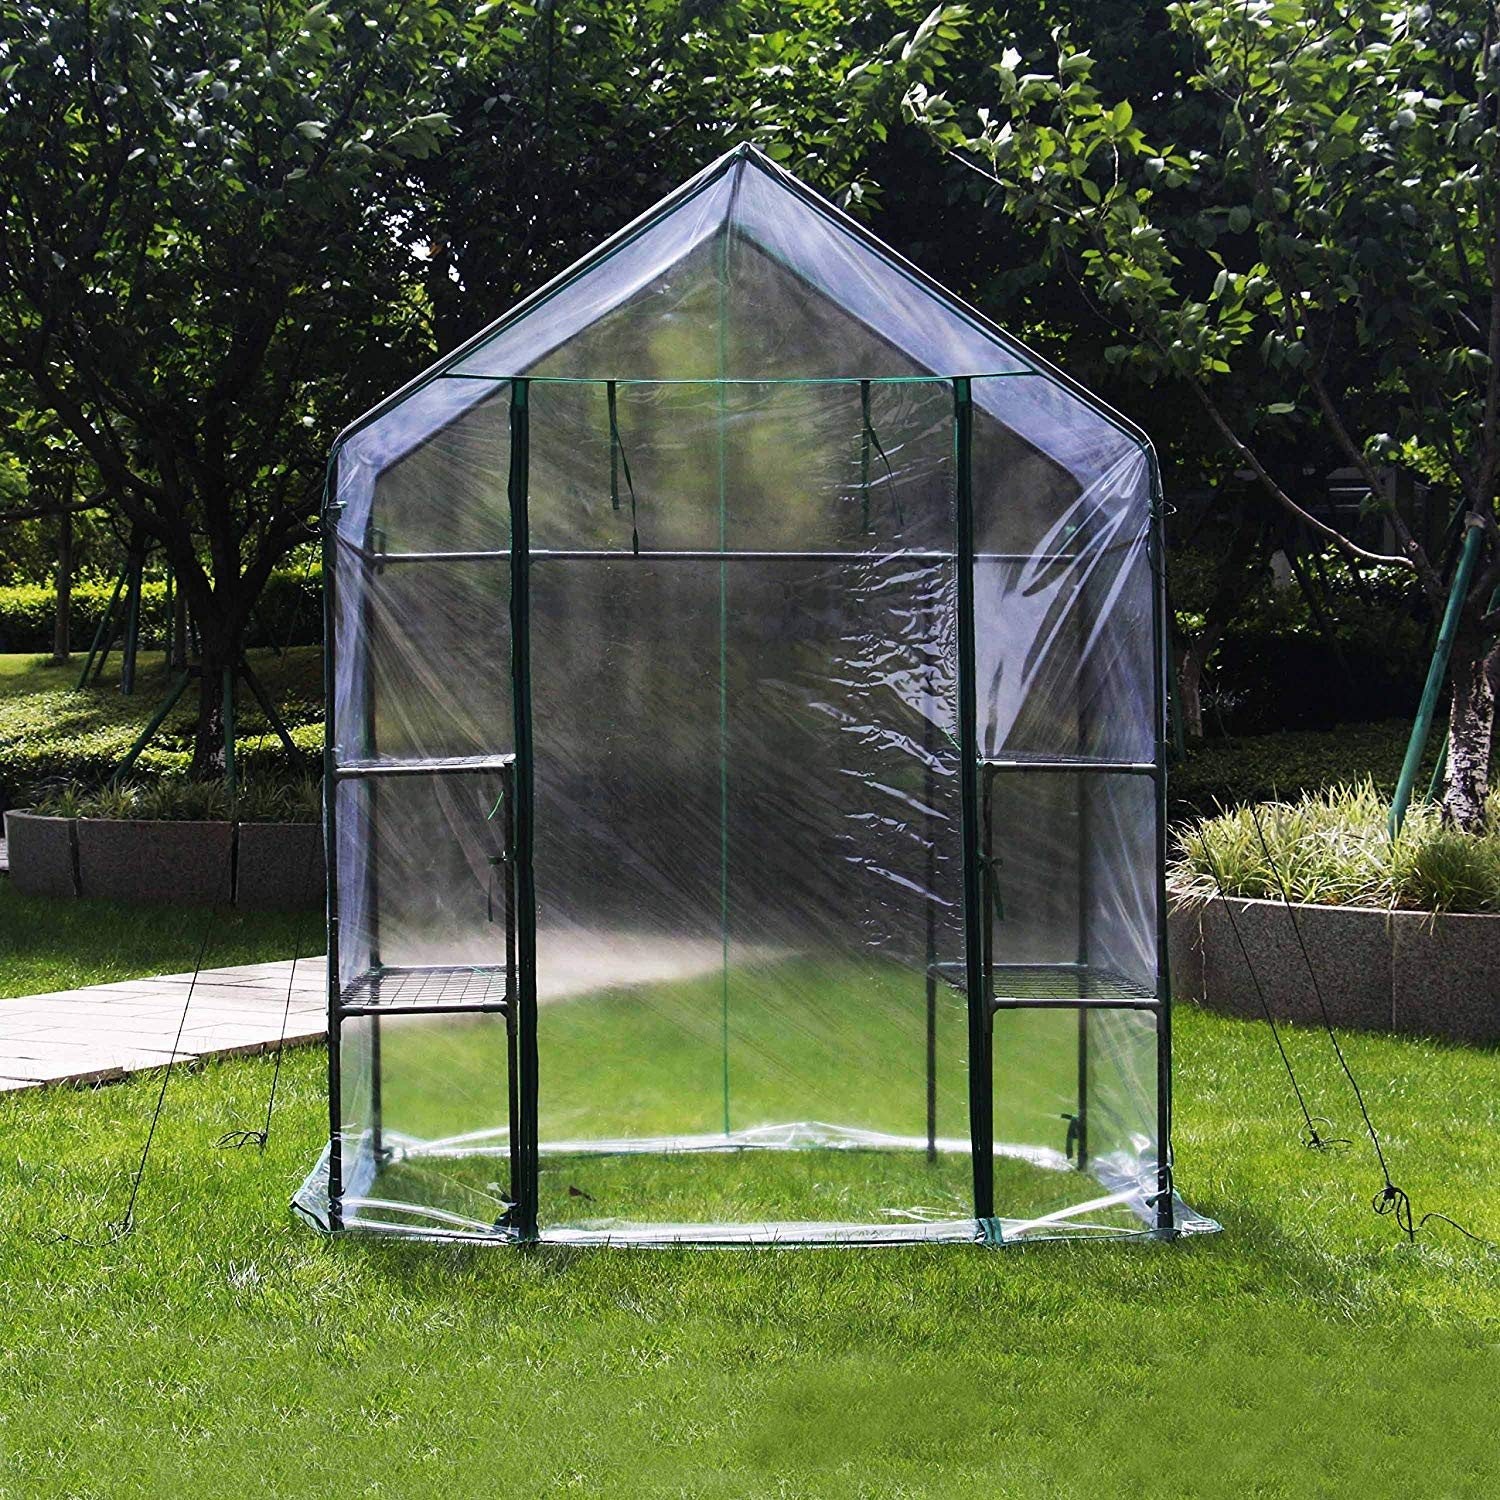 Redd Royal Green House 56  W x 56  D x 77  H,4HOMART Walk-in Greenhouse With PE Cover,Strong Metal Frame,3 Tiers 6 Shelves with Roll-Up Zipper Door Plant Garden Outdoor Green House